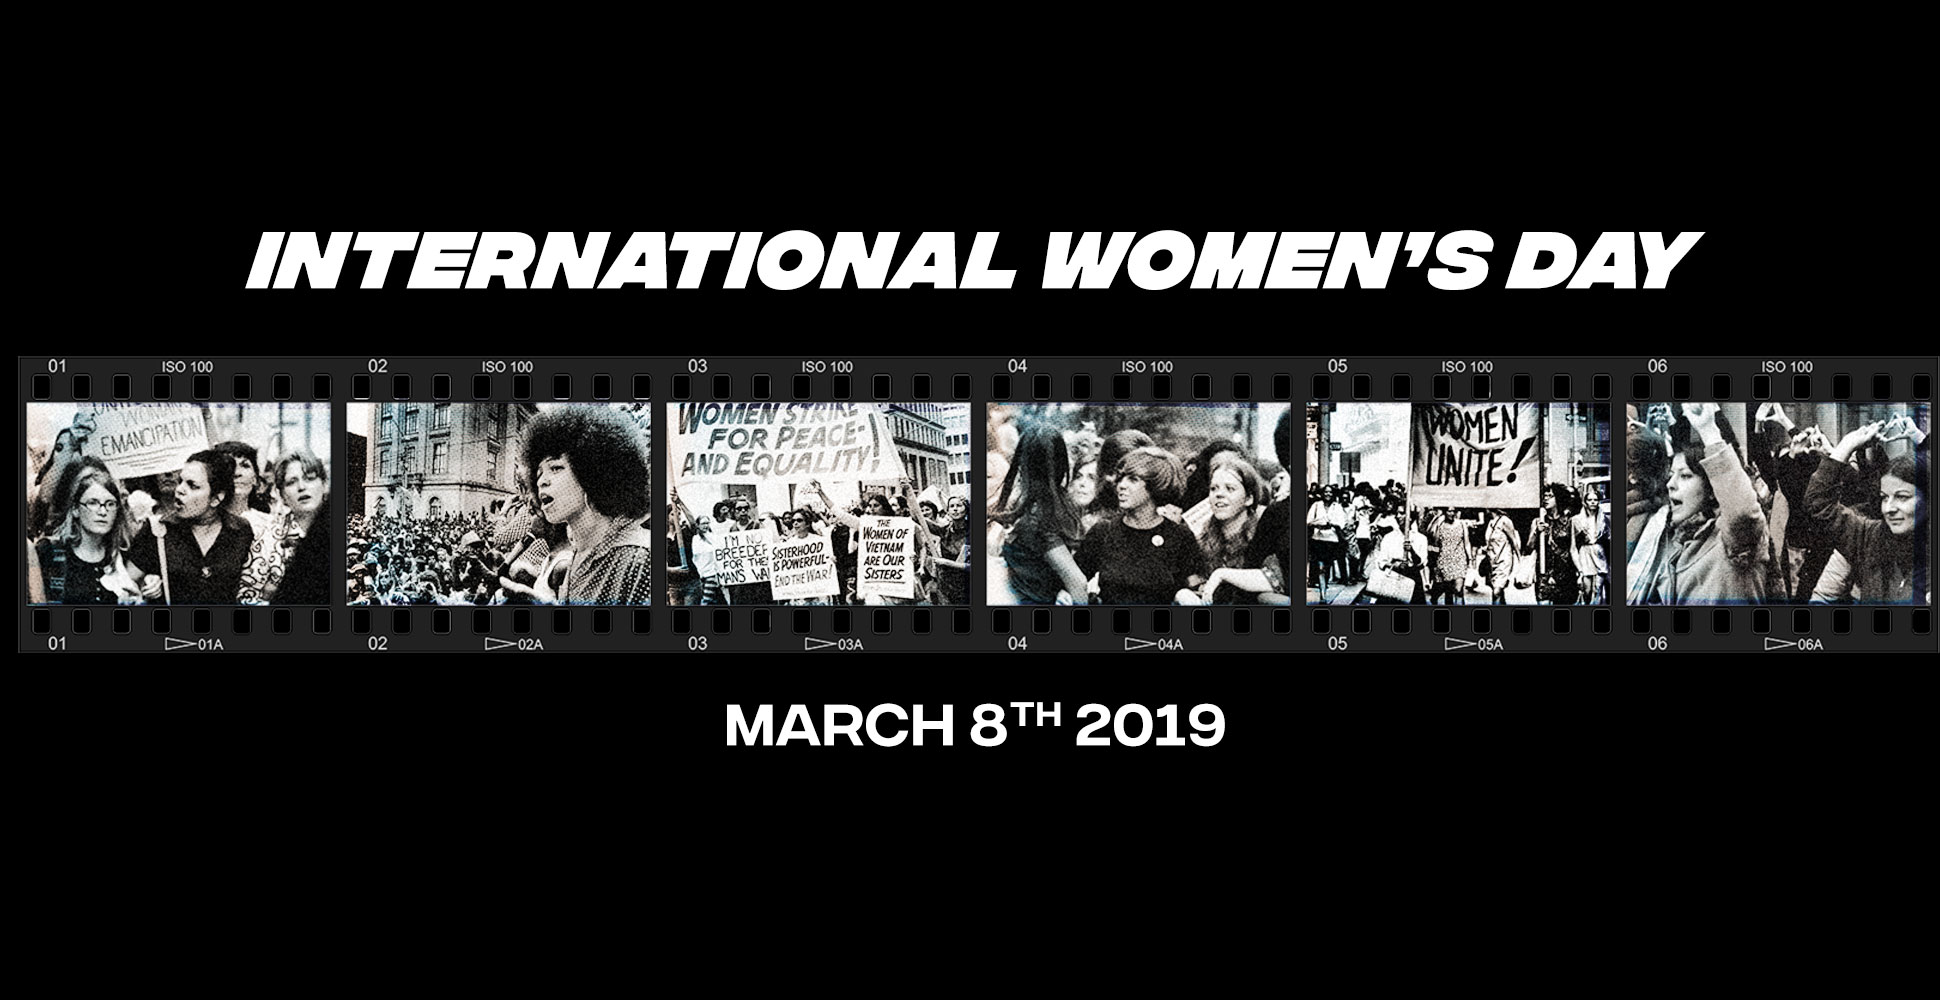 e4f4783a7 To celebrate International Women's Day, JOE spoke to women from various  walks of life about their personal experiences, the issues that matter to  them and ...